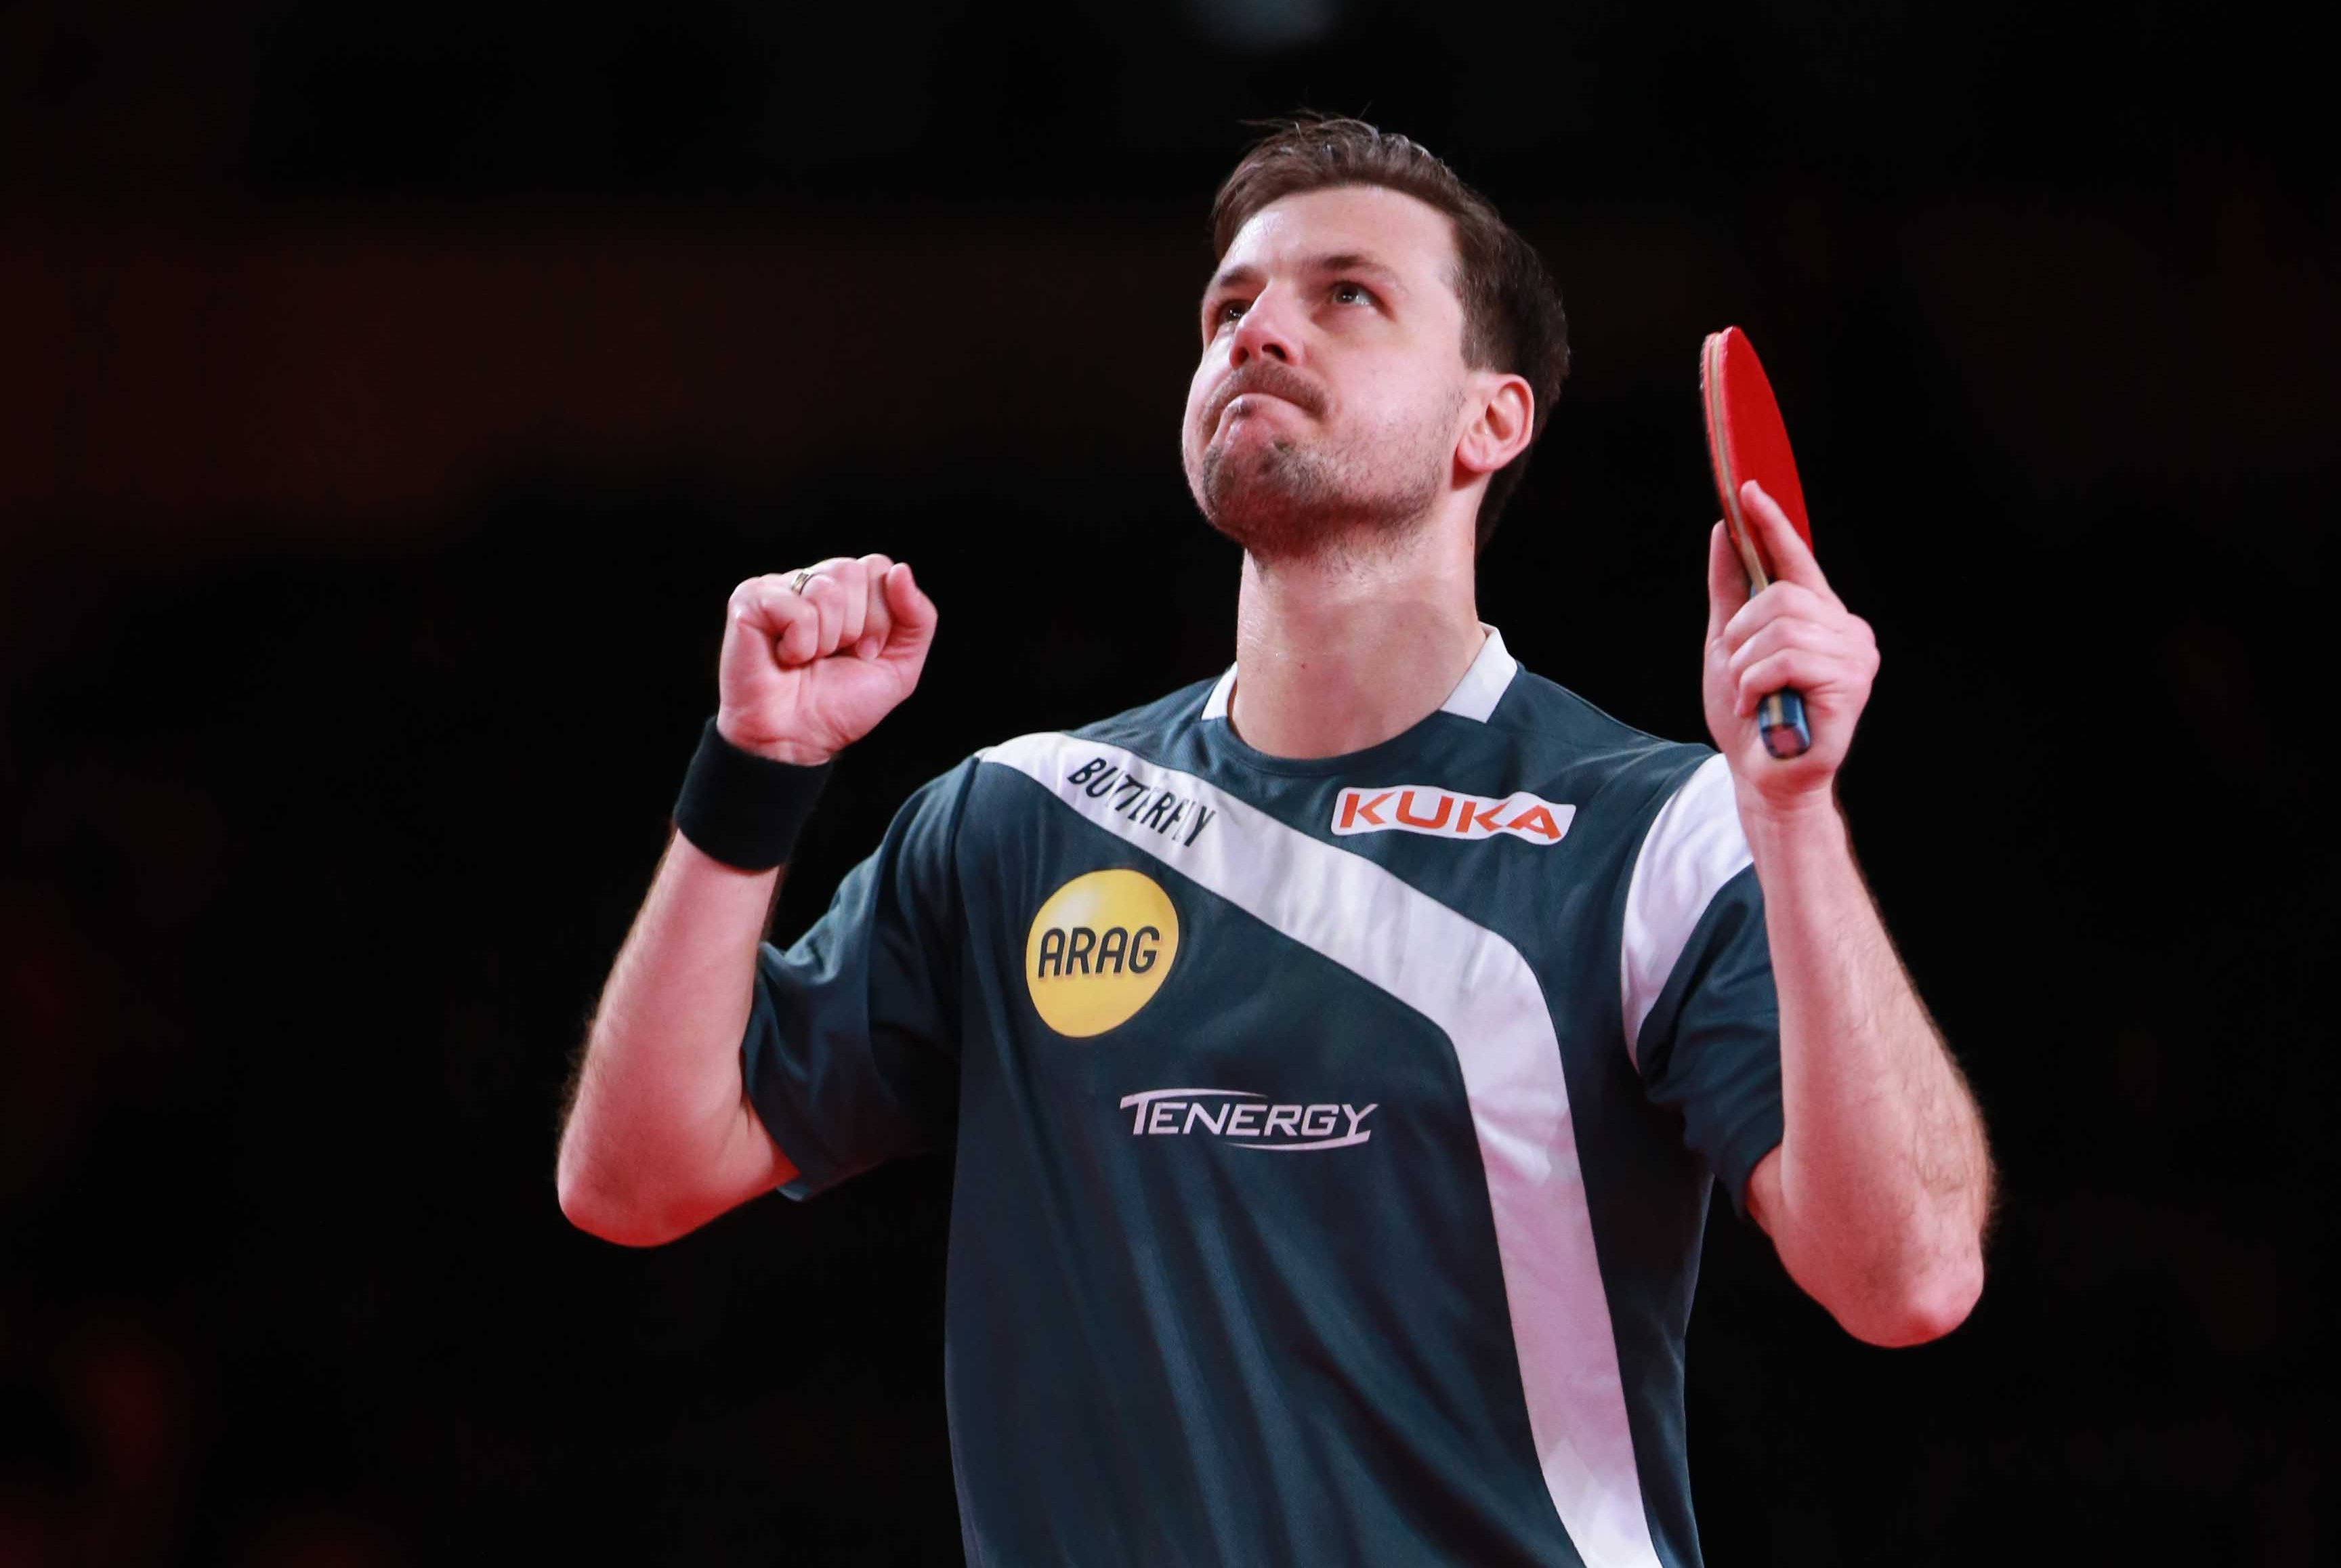 108 Countries Compete at 2017 World Table Tennis Championships